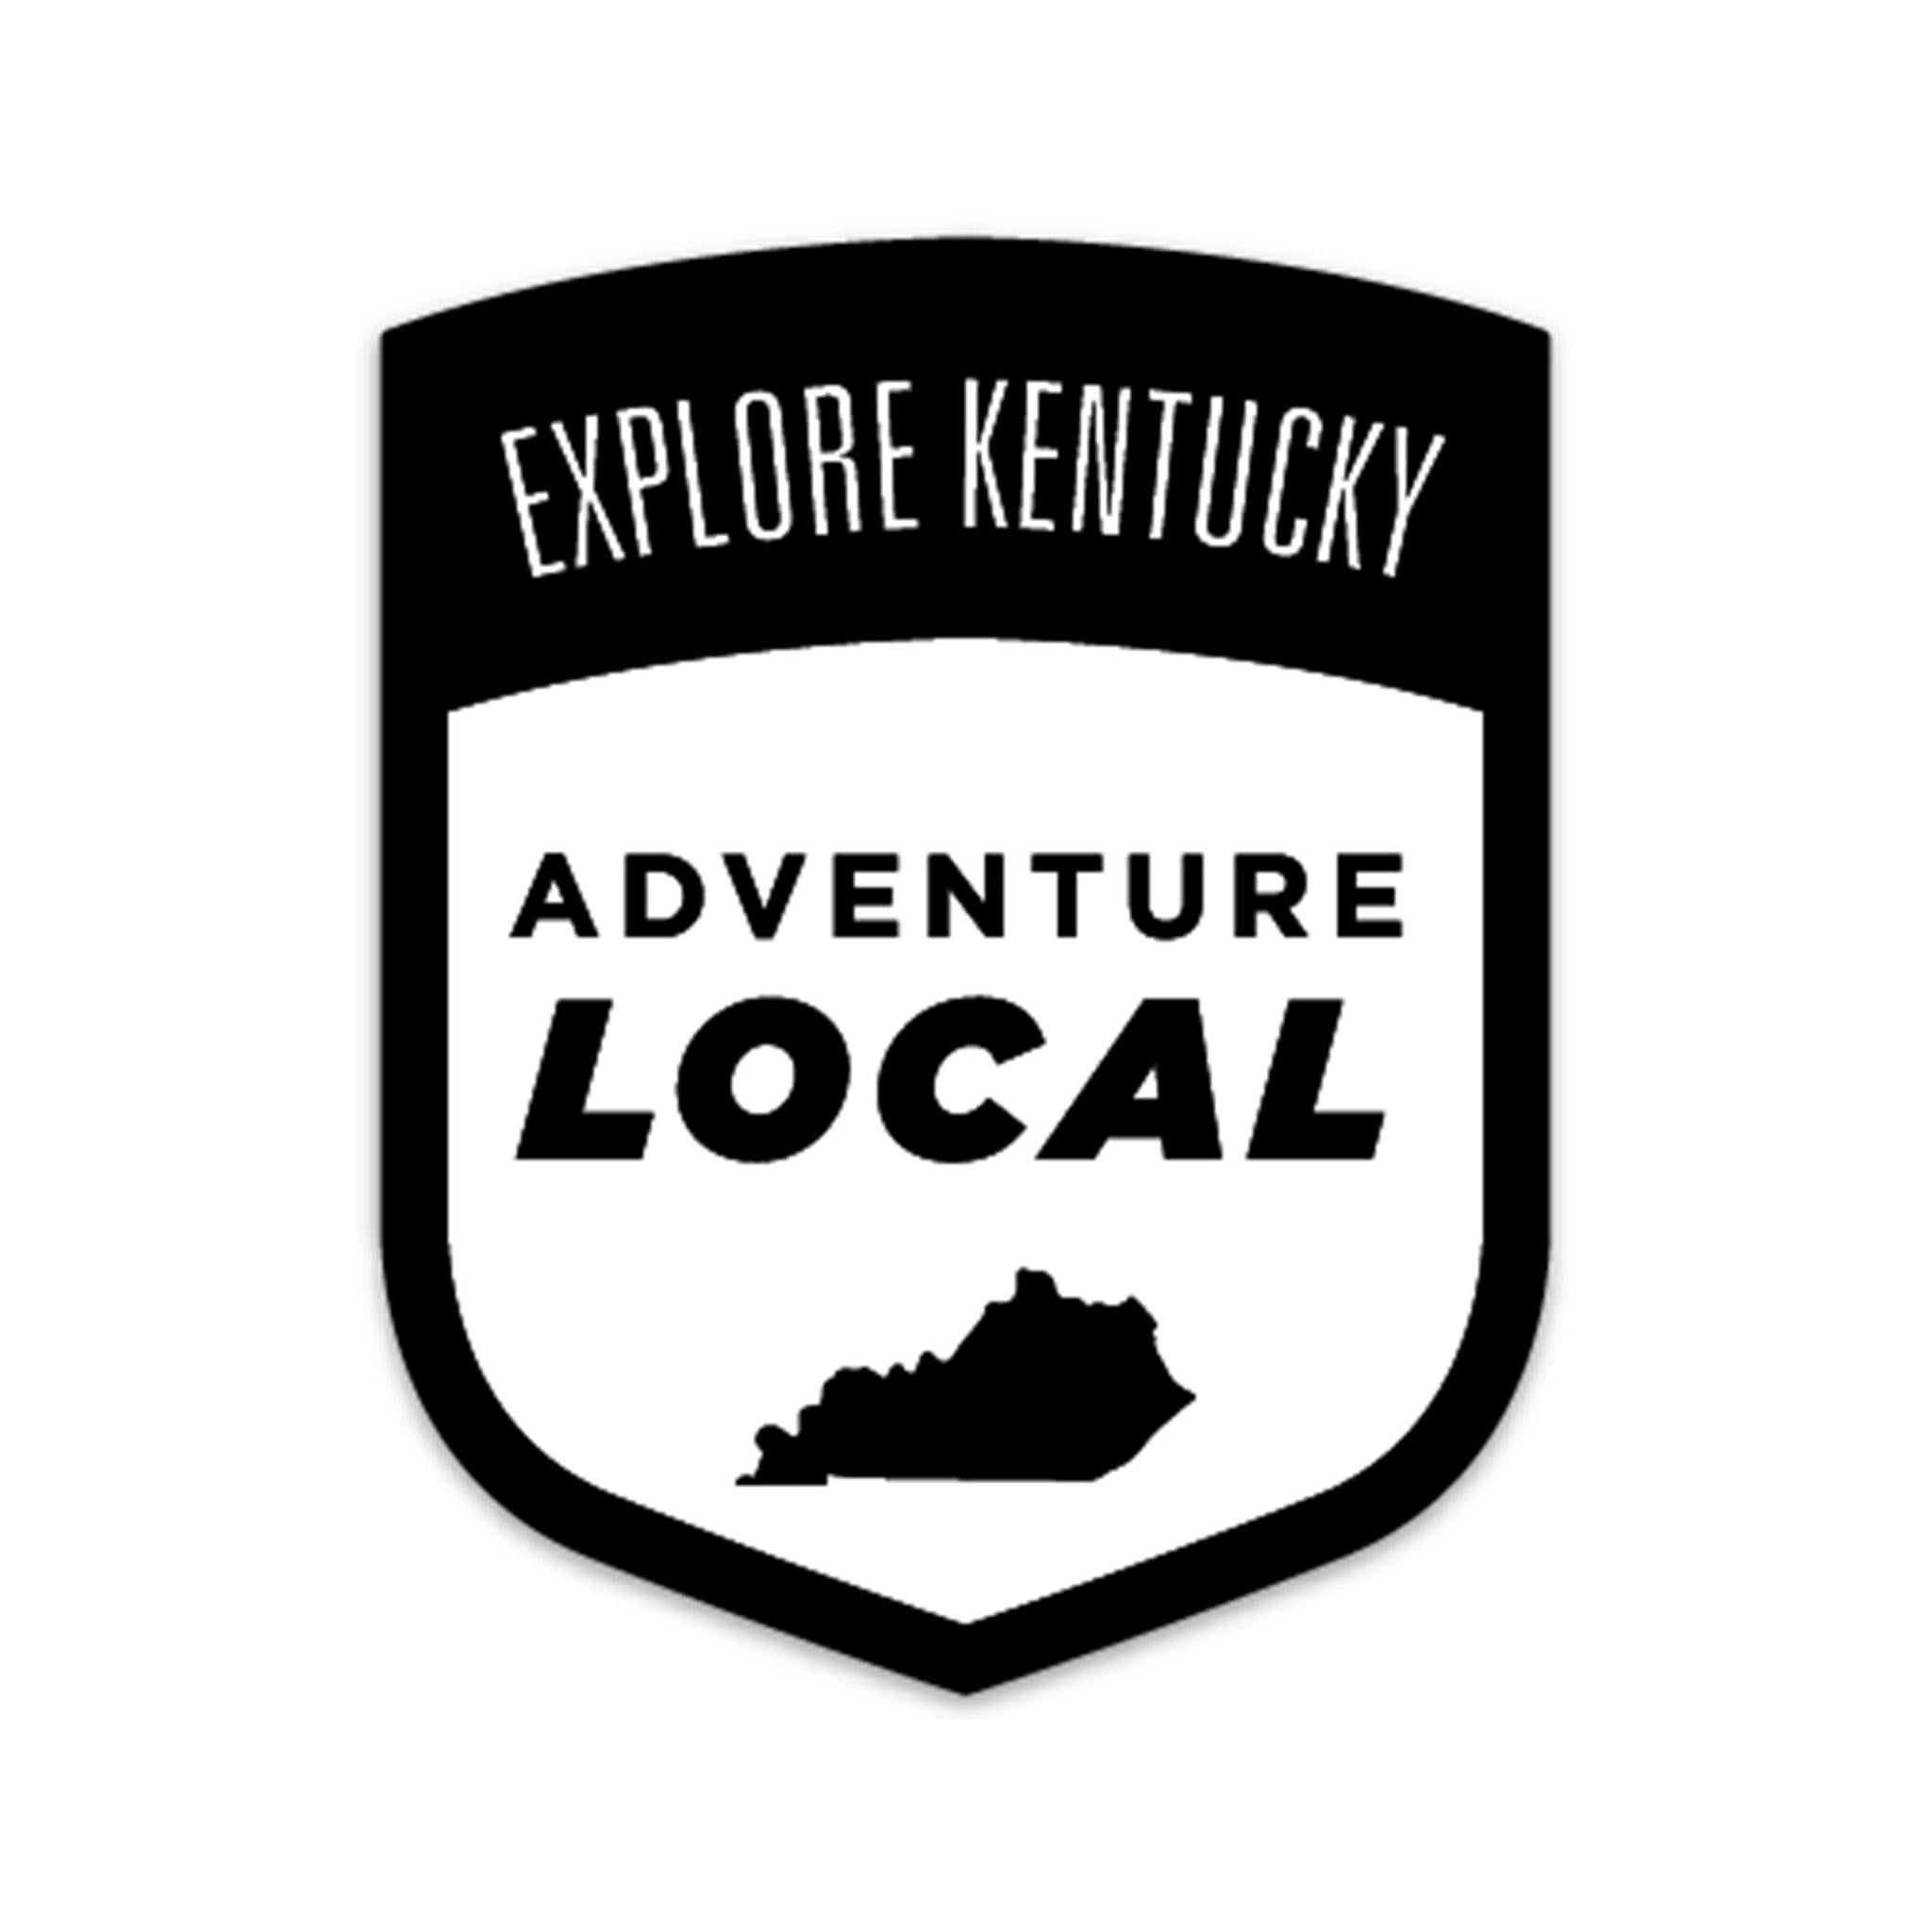 Explore Kentucky's Adventure Local Sticker (Black)-KY for KY Store